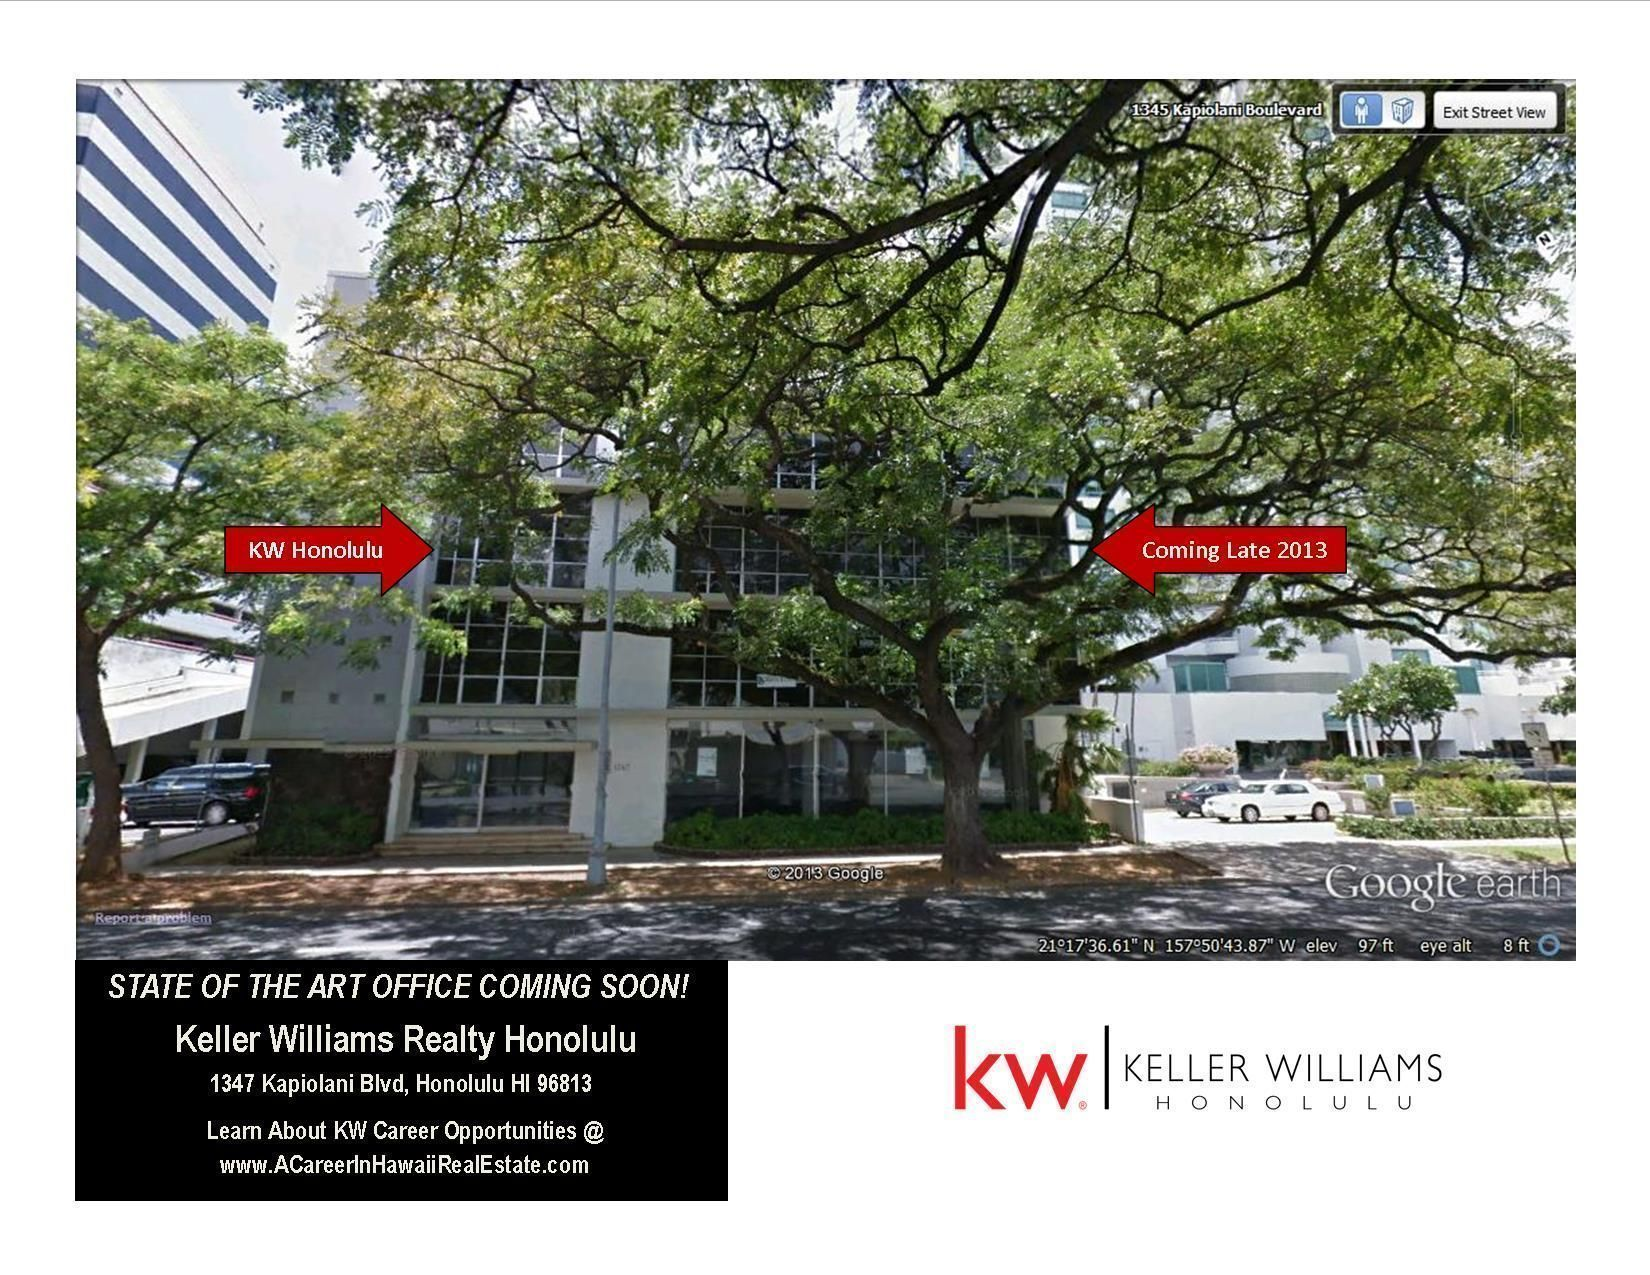 Keller Williams Honolulu Office COMING SOON